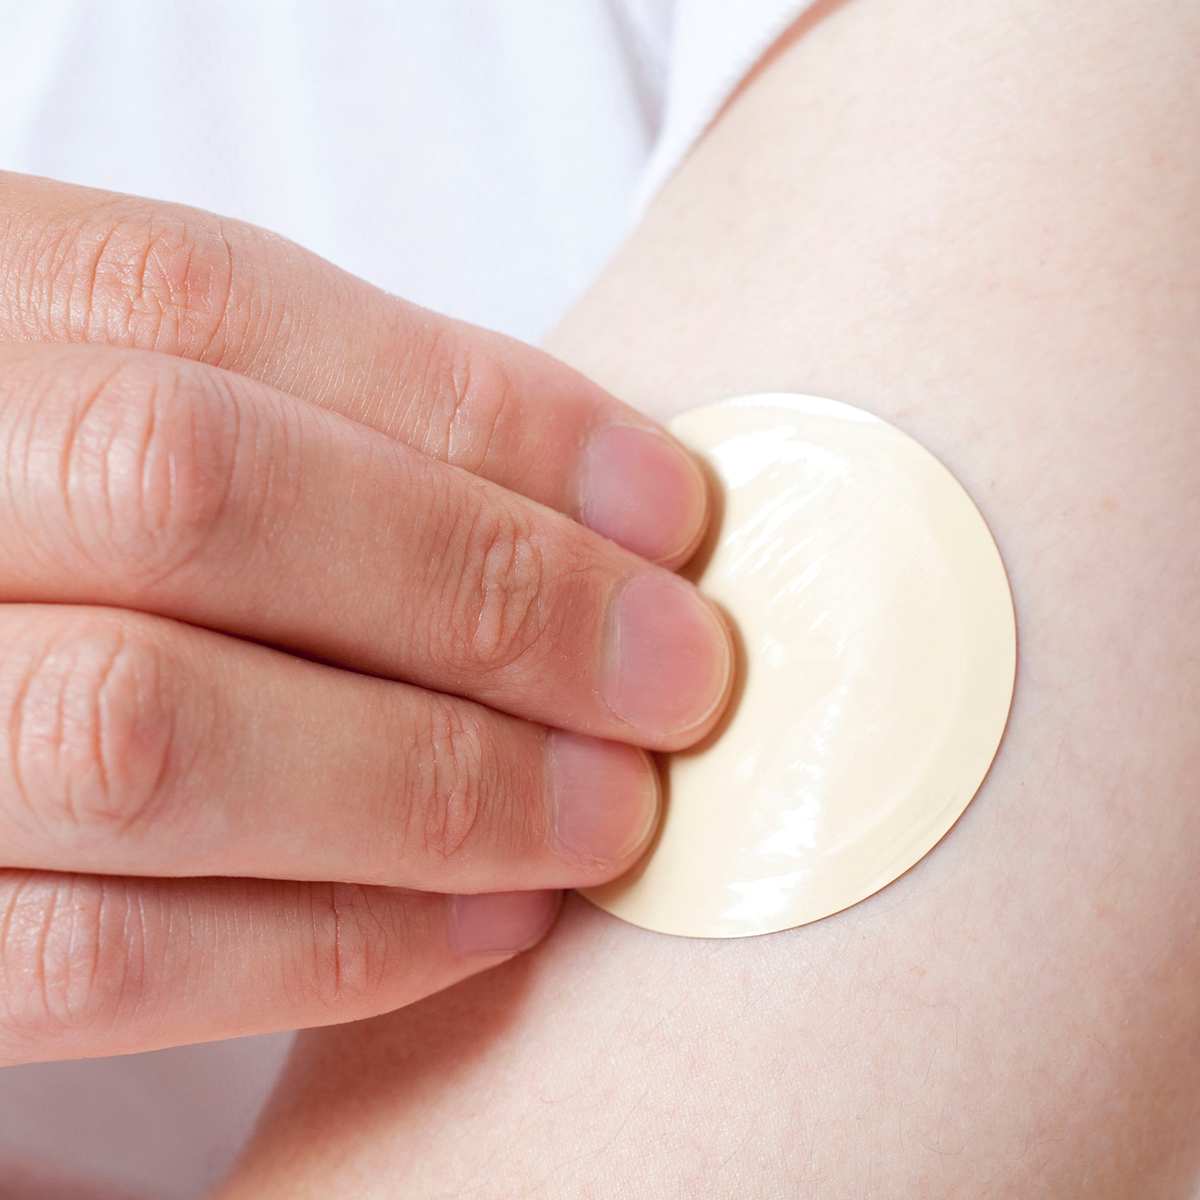 Vitamin Patch Efficacy for Bariatric Patients